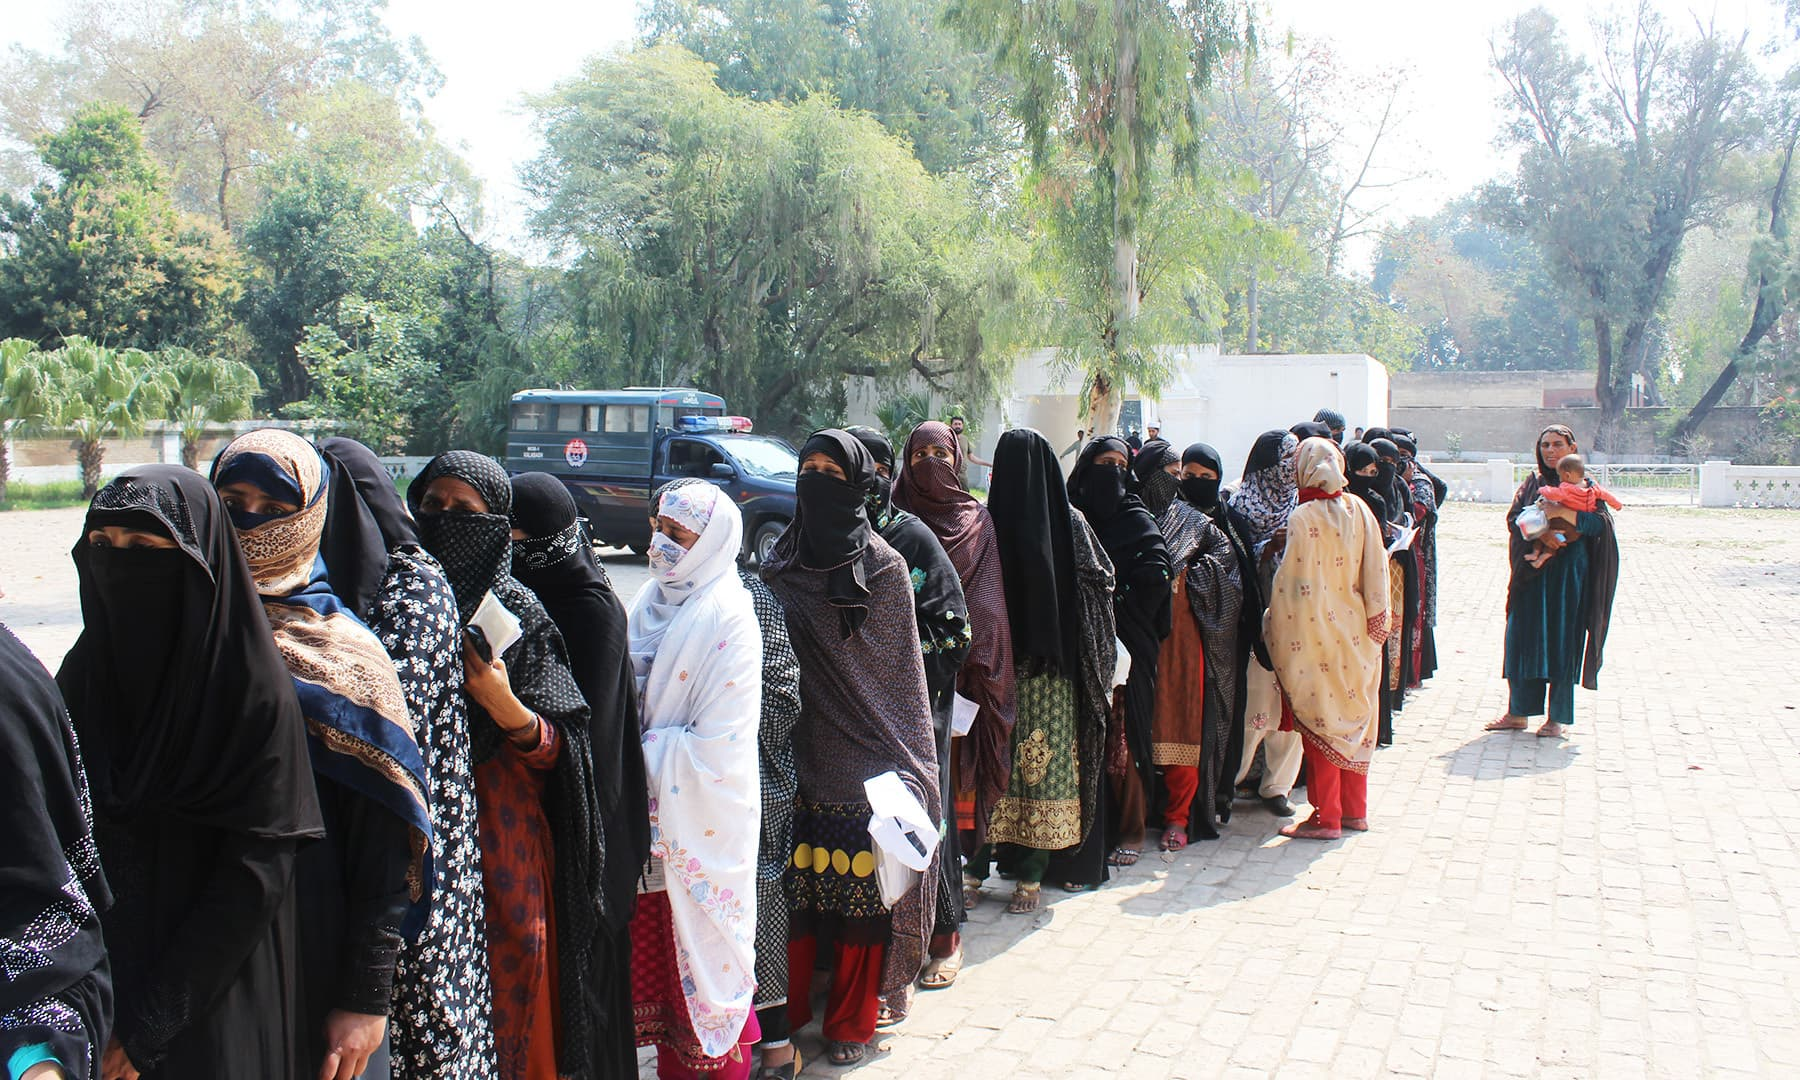 How will the women from Mianwali who do not have CNICs vote in the upcoming election?